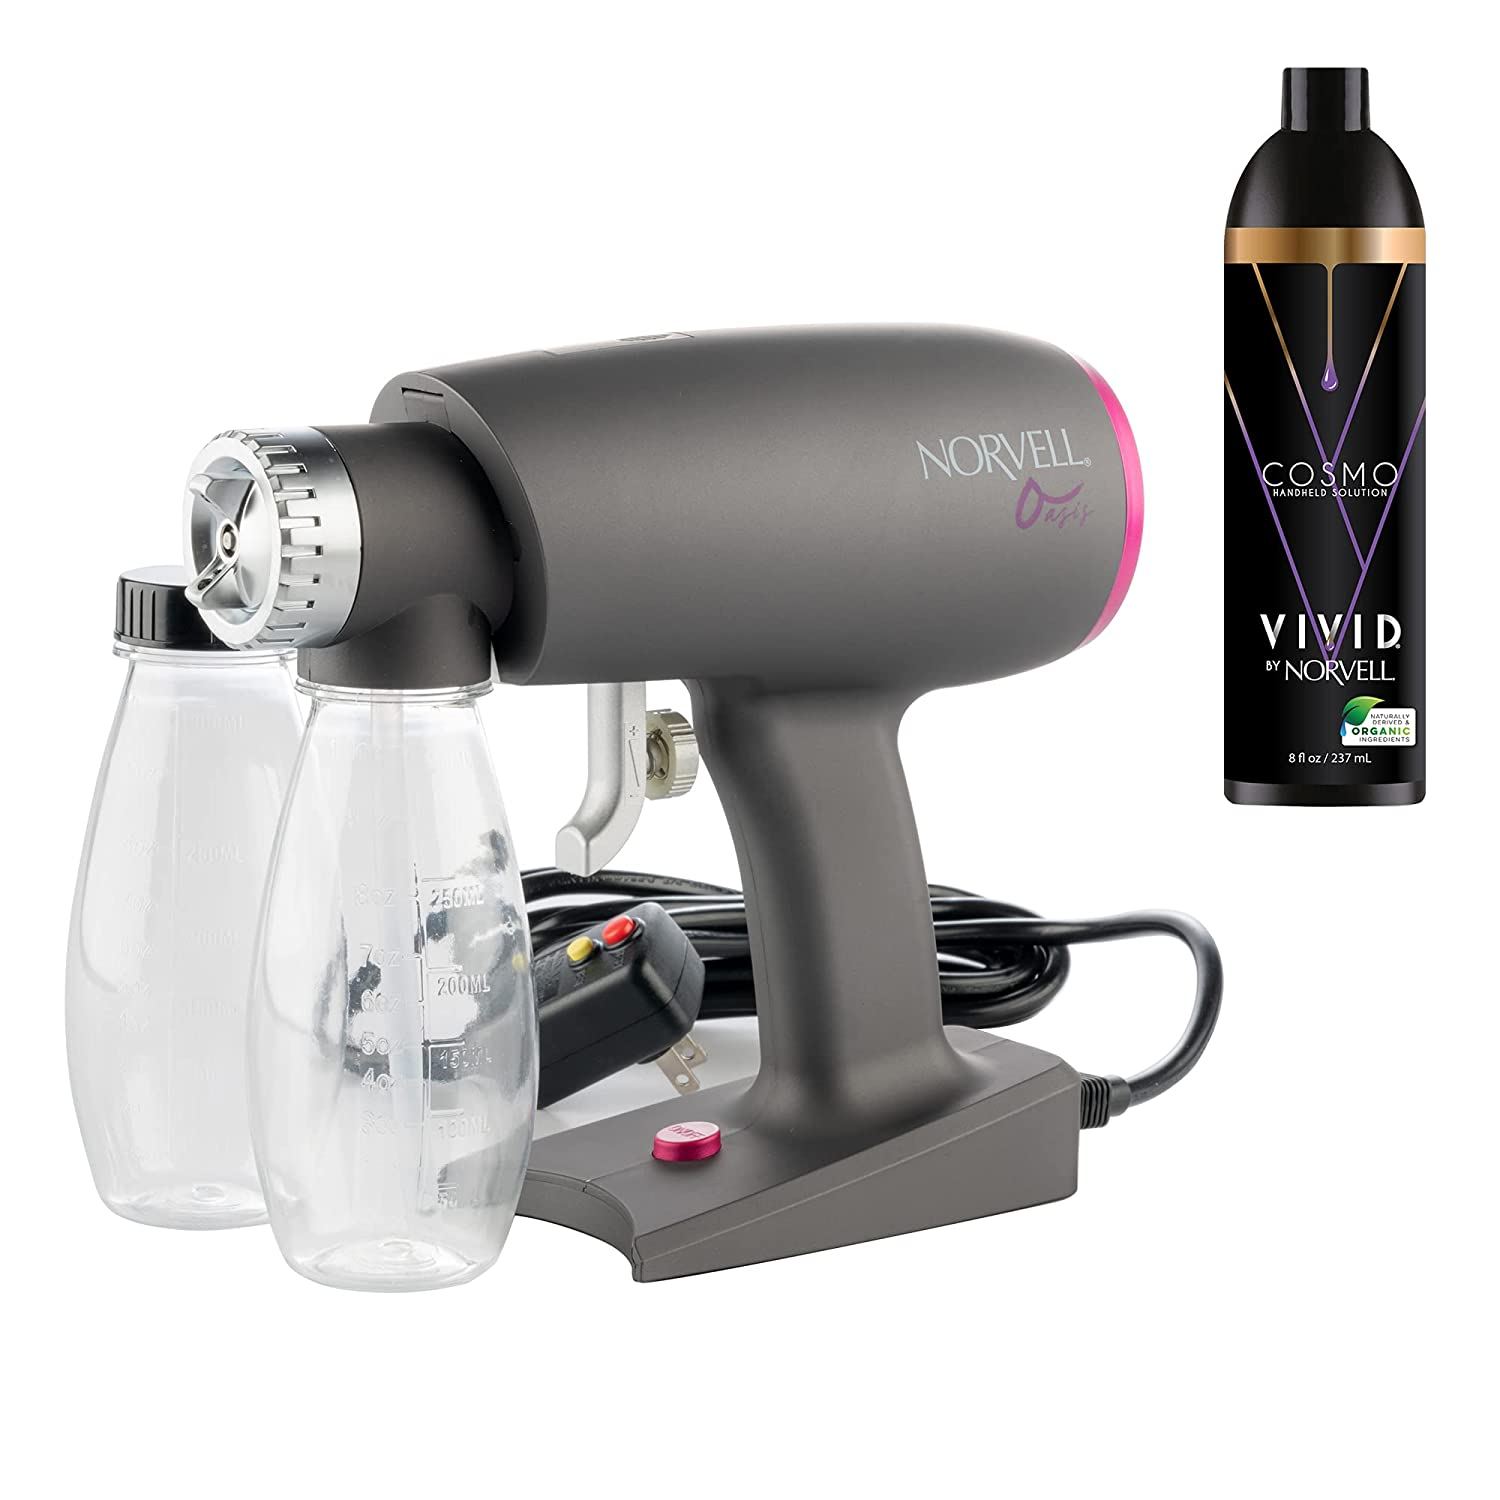 Oasis Spray Tan Machine Kit with Norvell Cosmo Airbrush Spray Tanning Sunless Solution Bundle (2 Items)